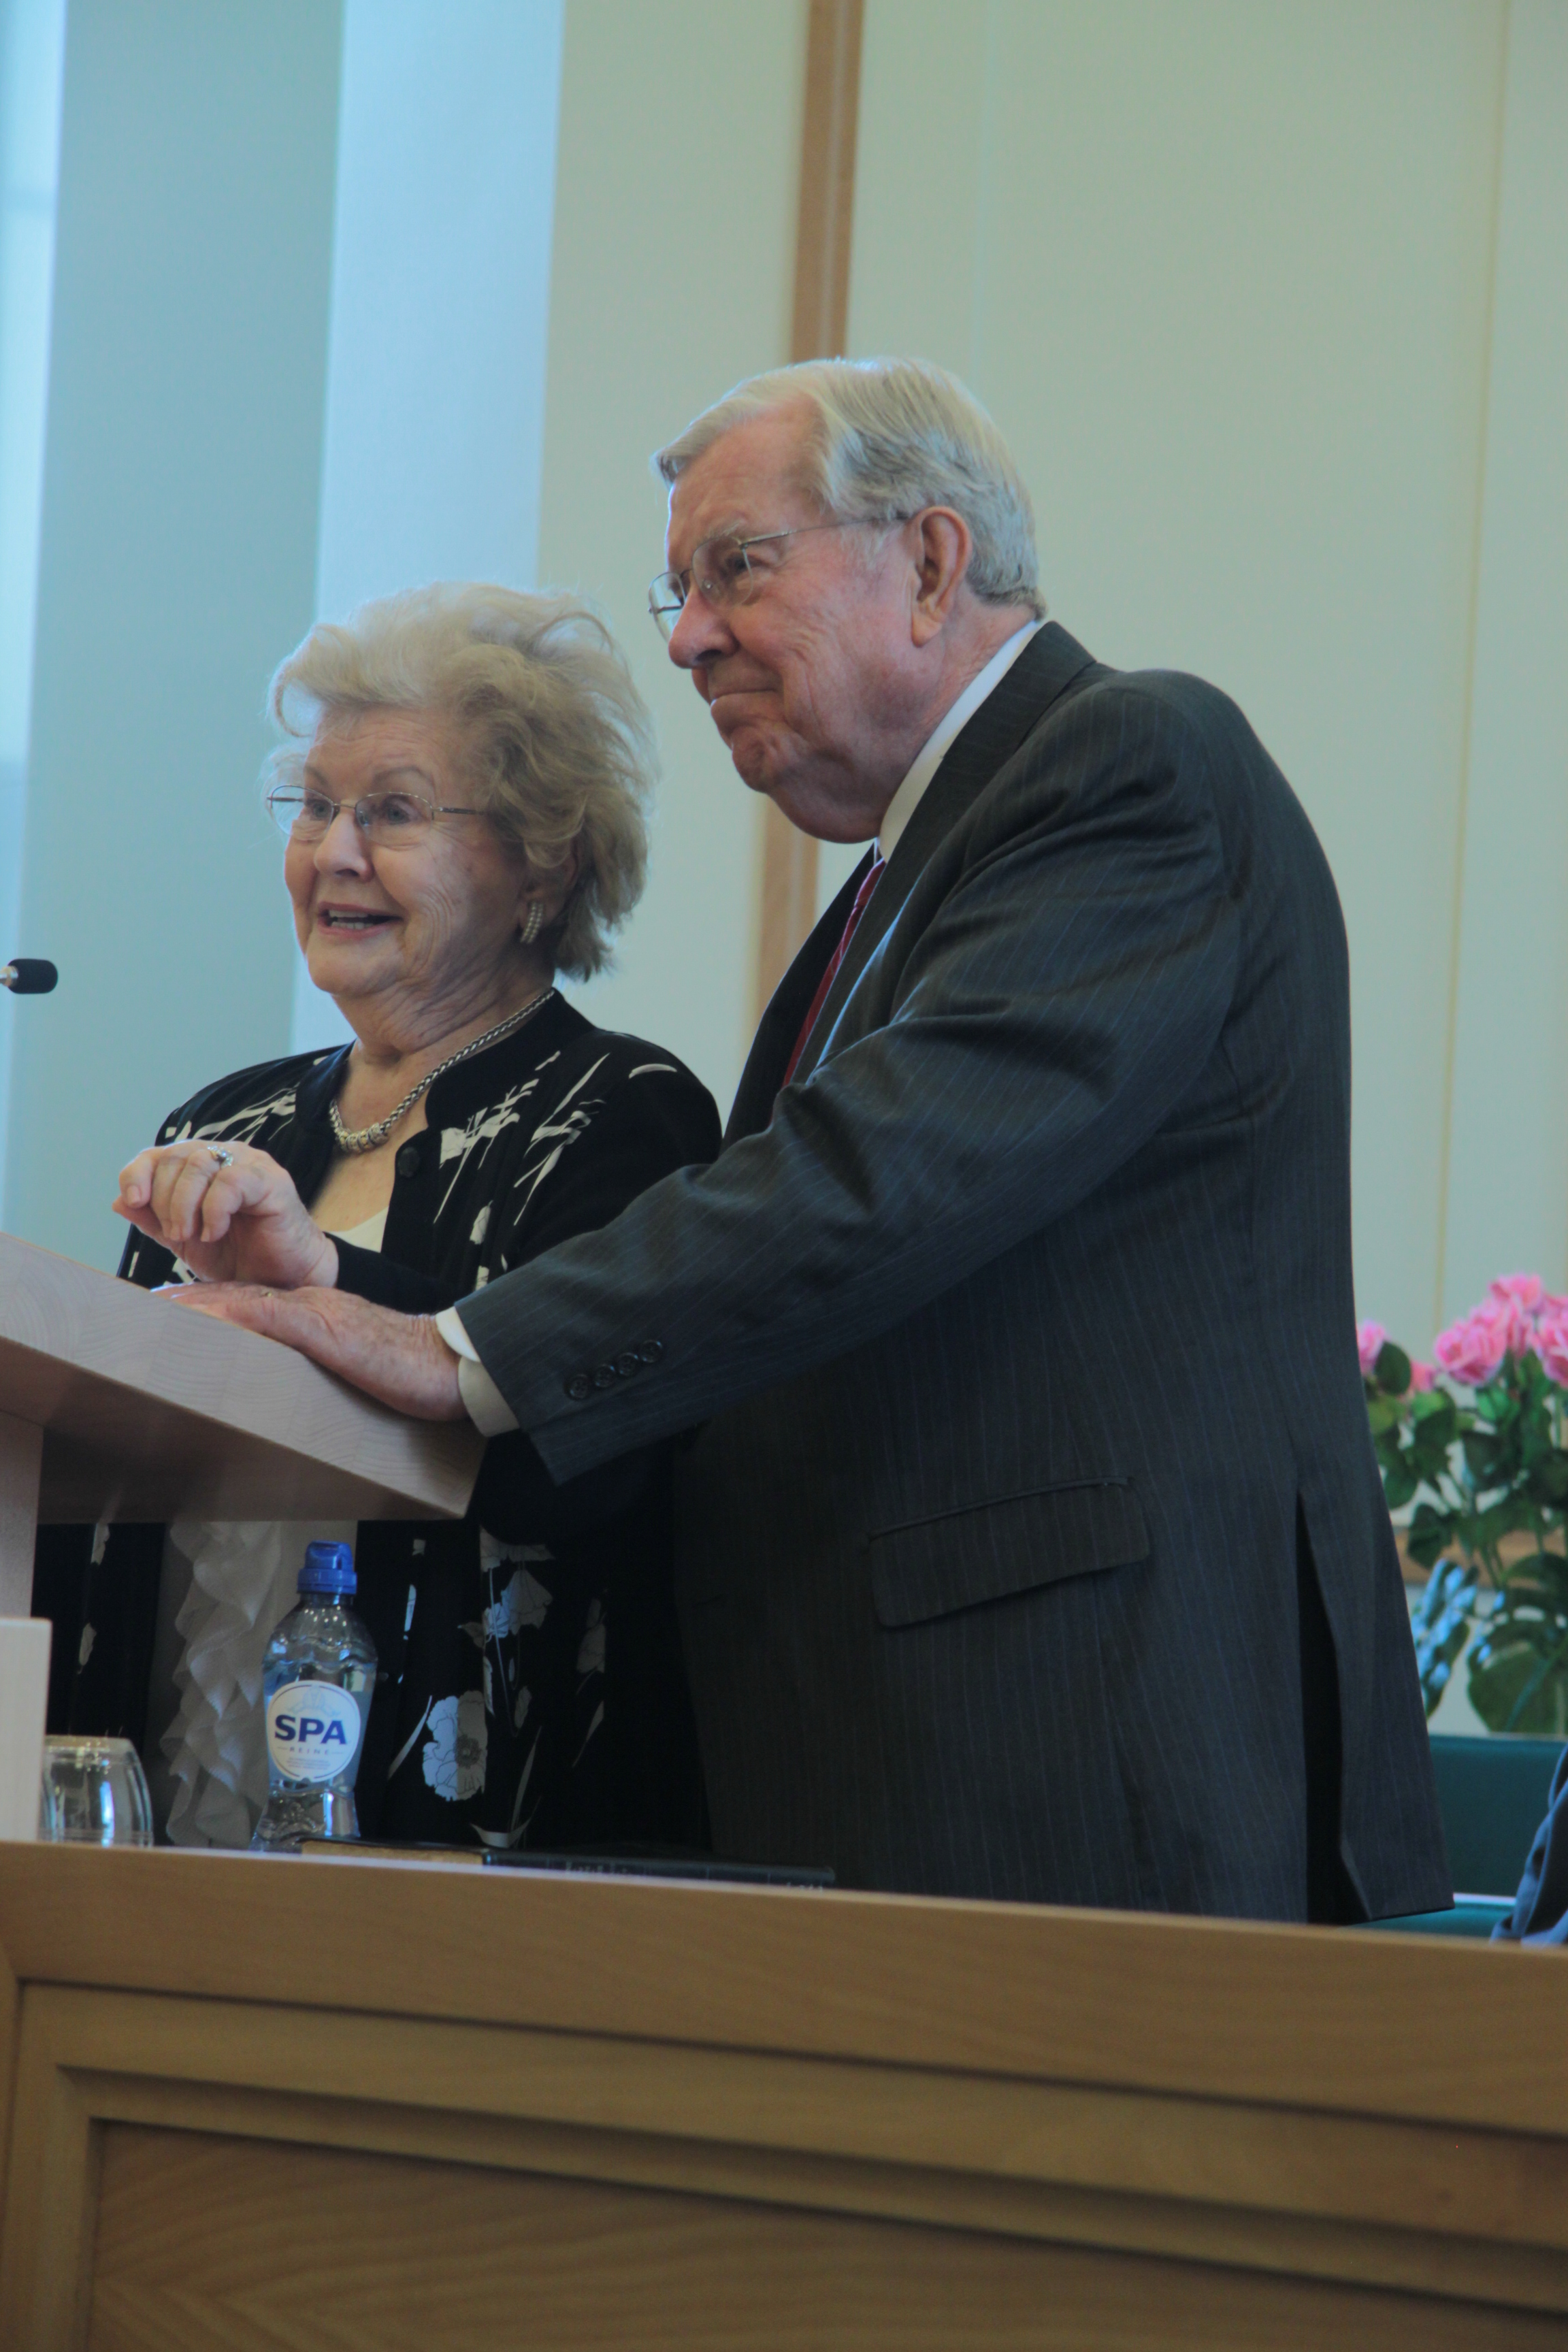 Sister Barbara B. Ballard joins her husband, Elder M. Russell Ballard, at the pulpit during a member meeting in Netherlands in September 2014.